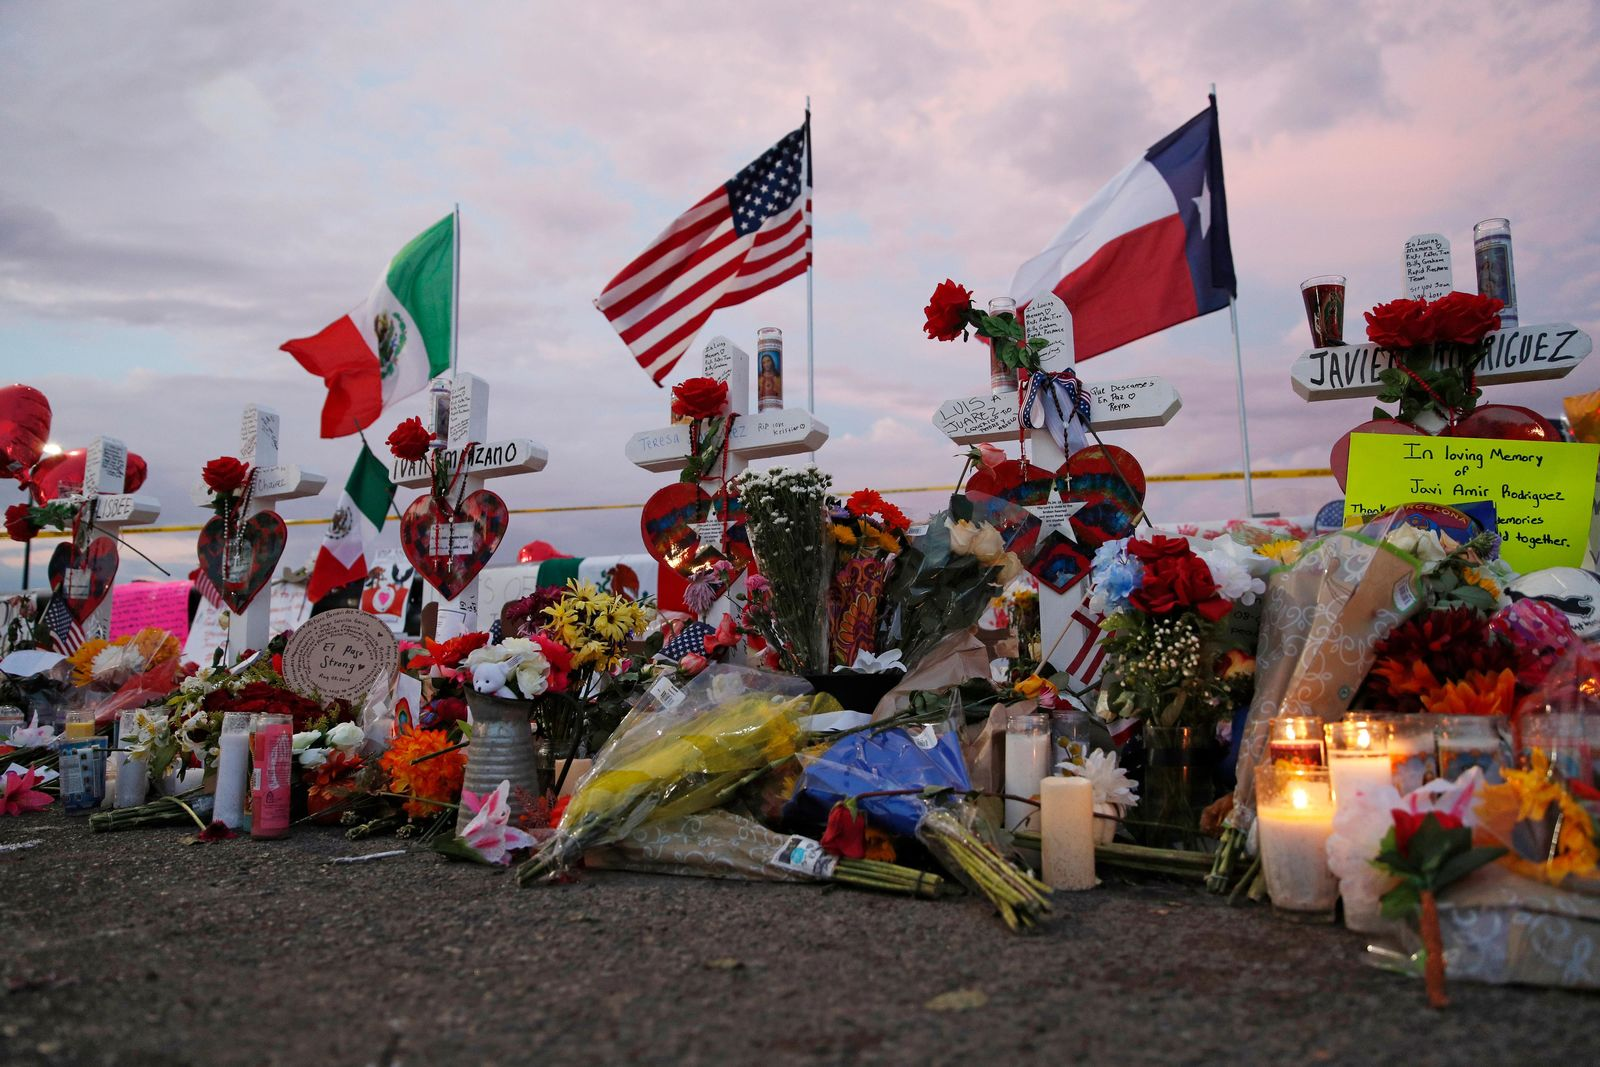 Flags fly over crosses at a makeshift memorial near the scene of a mass shooting at a shopping complex Tuesday, Aug. 6, 2019, in El Paso, Texas. (AP Photo/John Locher)